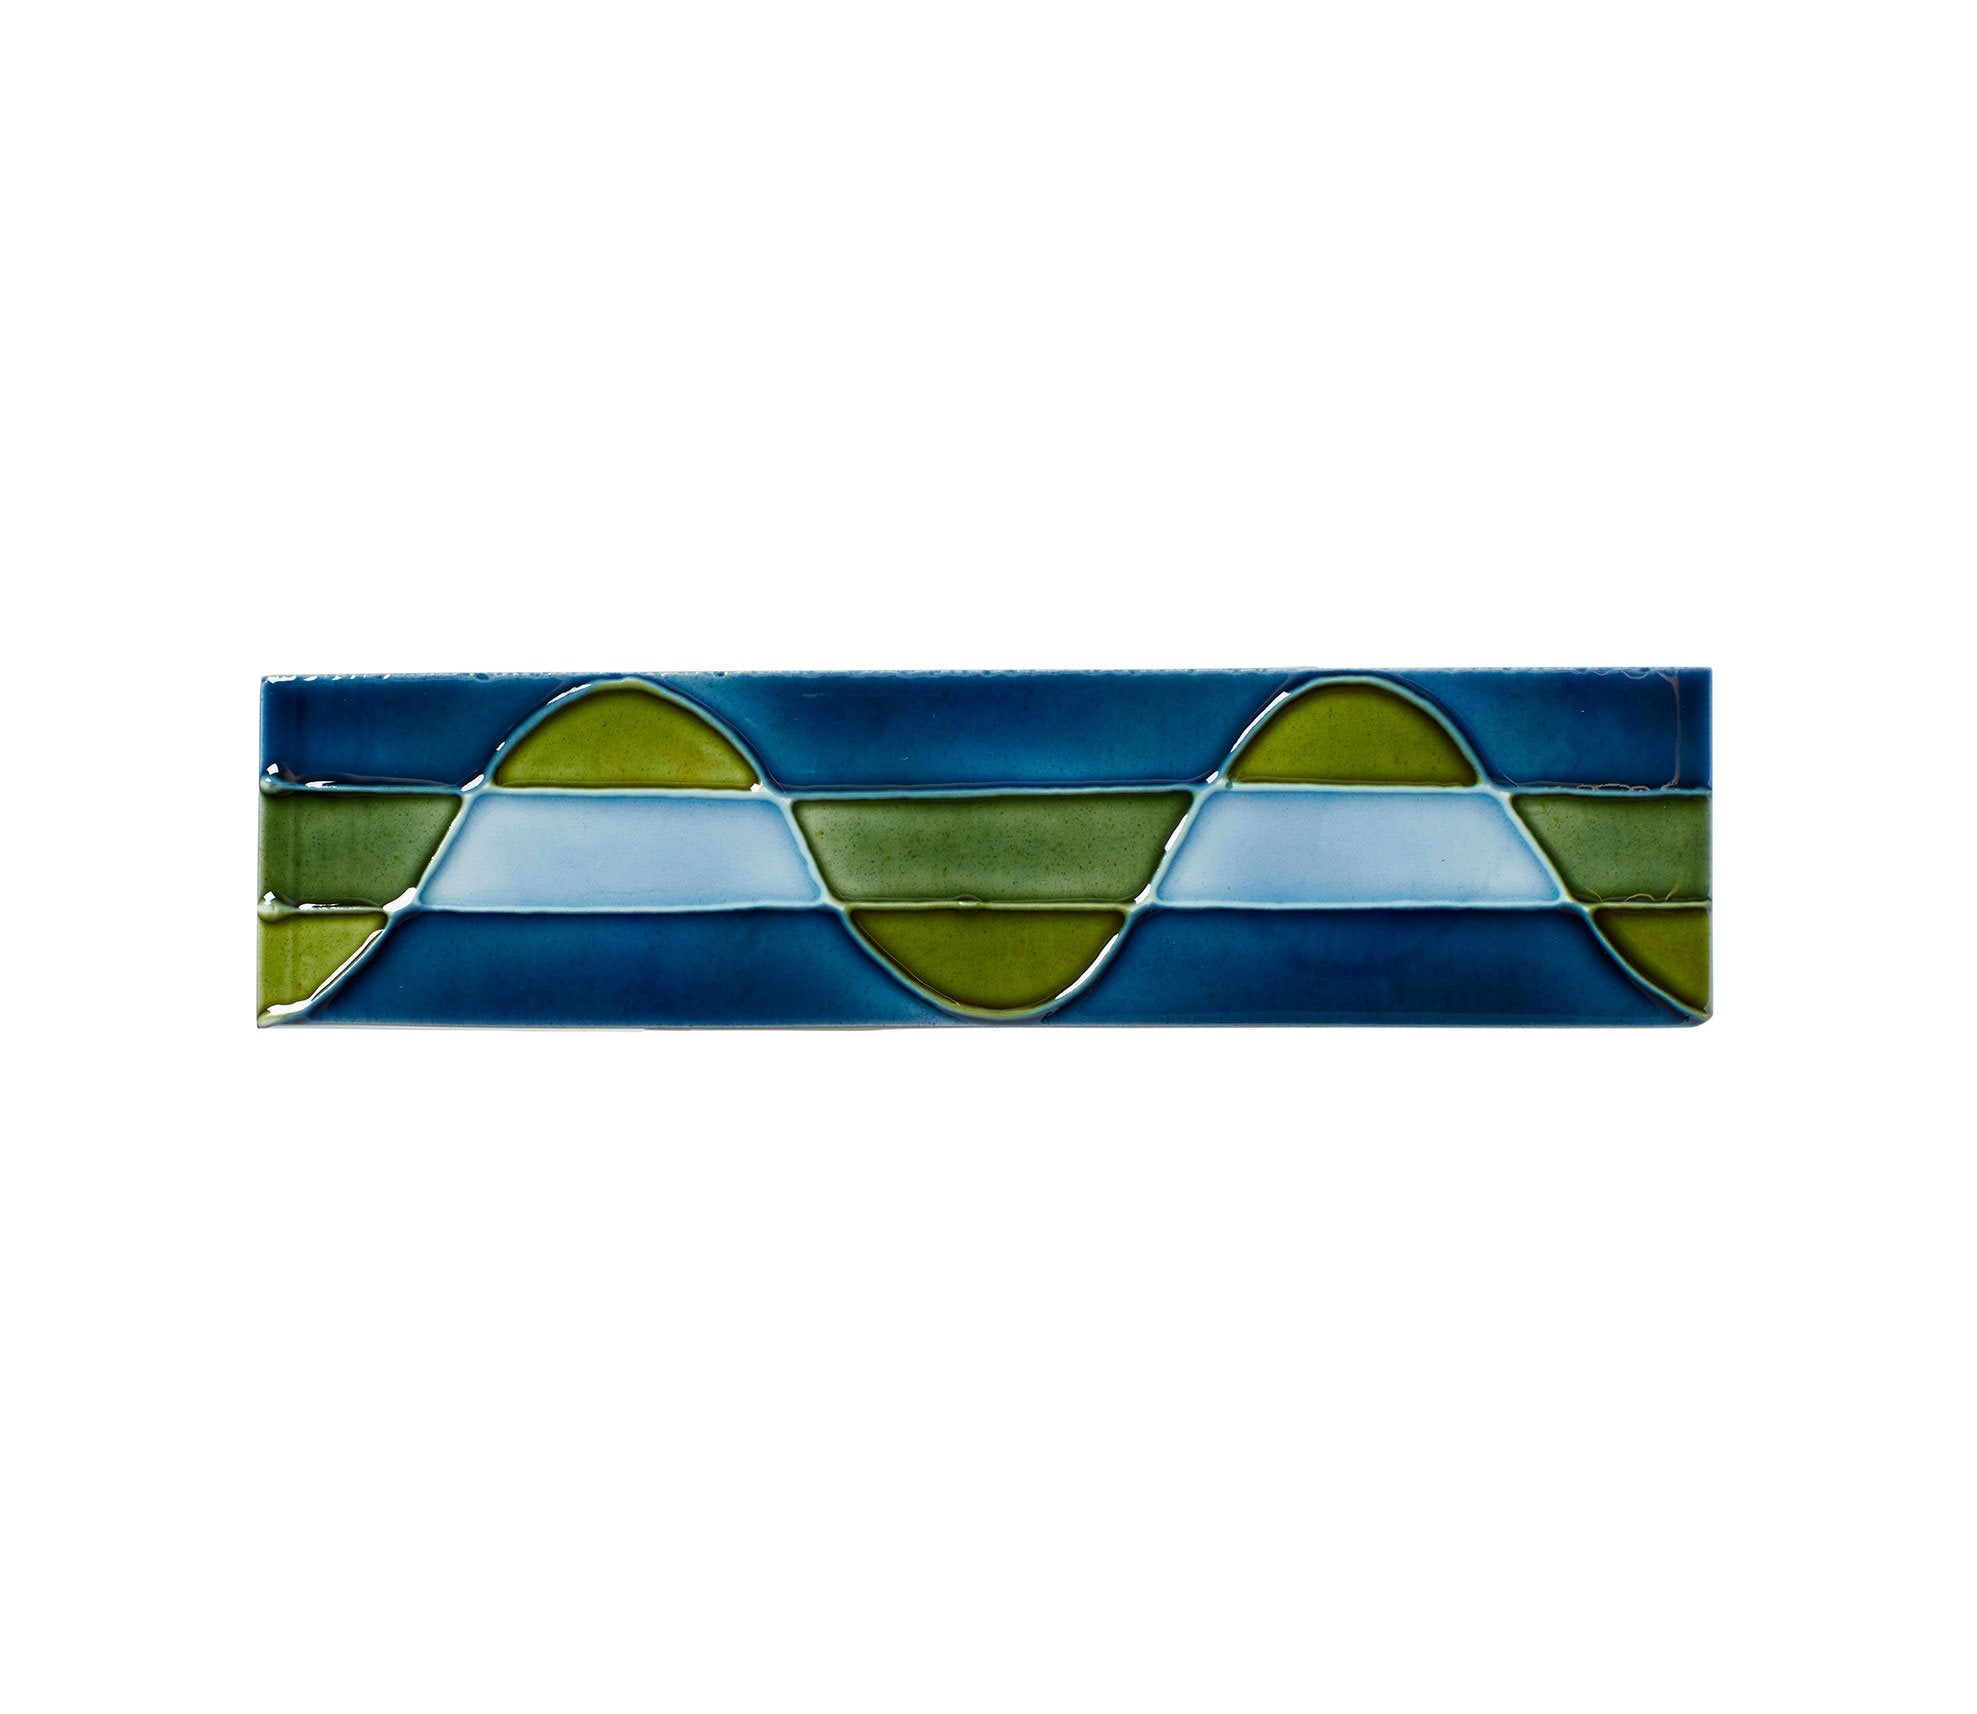 Hanley Tube Lined Decorative Tiles Product Image 37